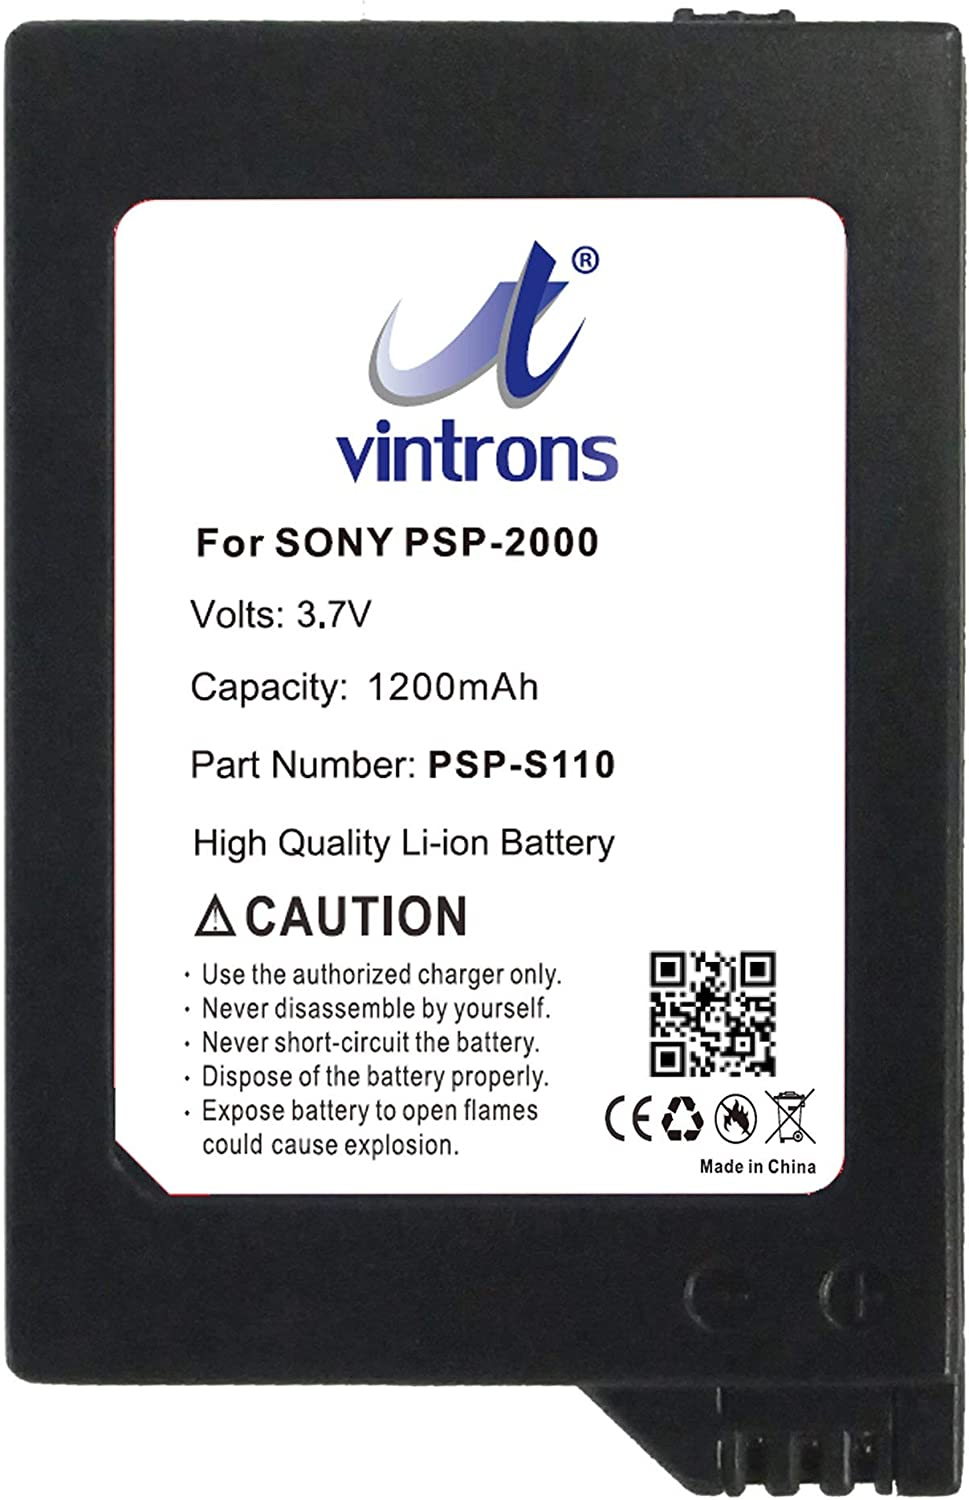 VINTRONS PSP-S110 Battery Sales for sale Replacement PSP-300 Sony 2021new shipping free shipping PSP-2000